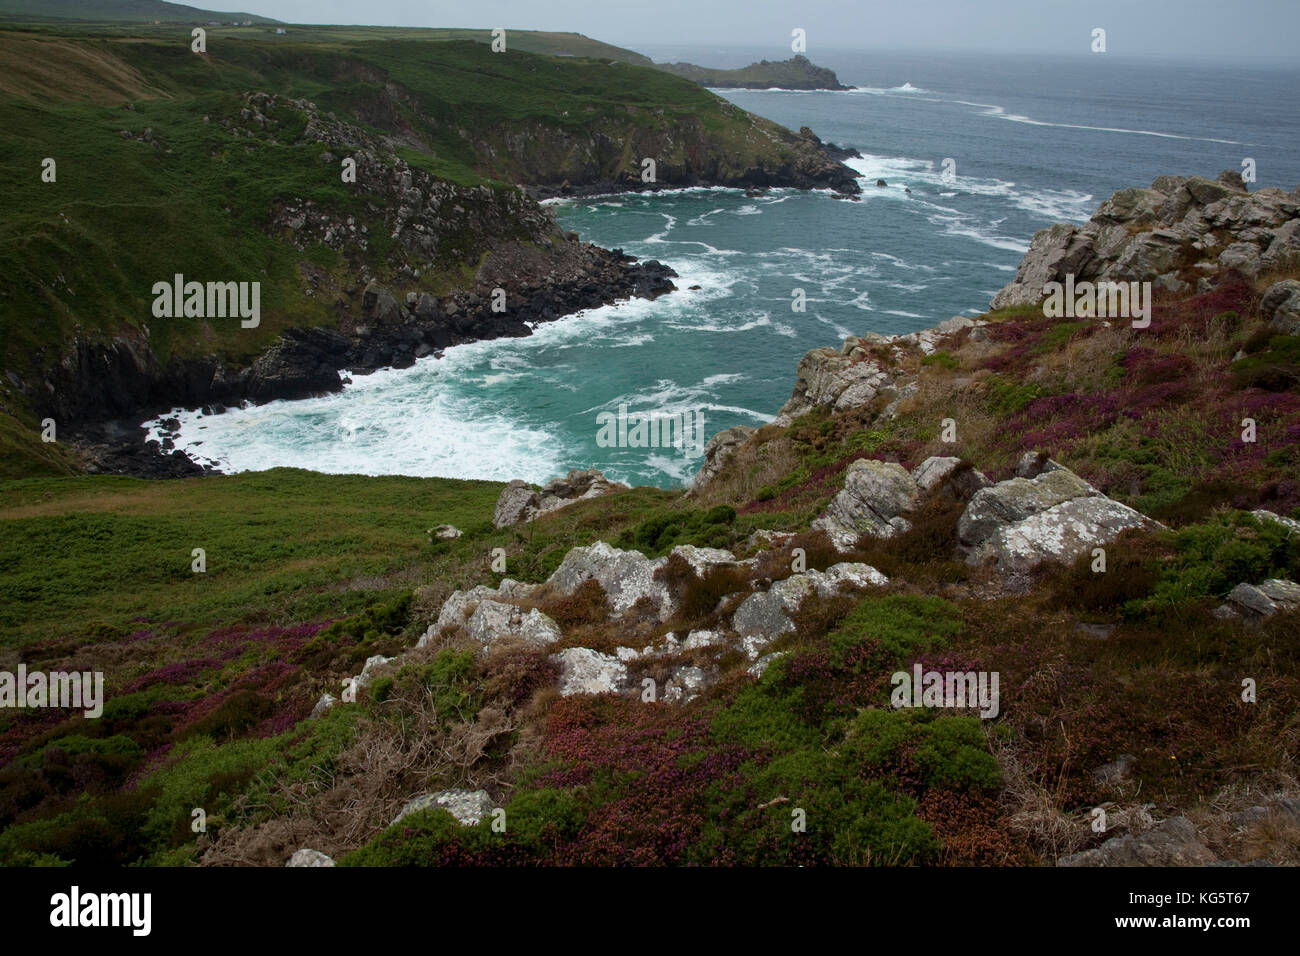 A cove along the National South West Coastal Path above Zennor in Cornwall, England. - Stock Image